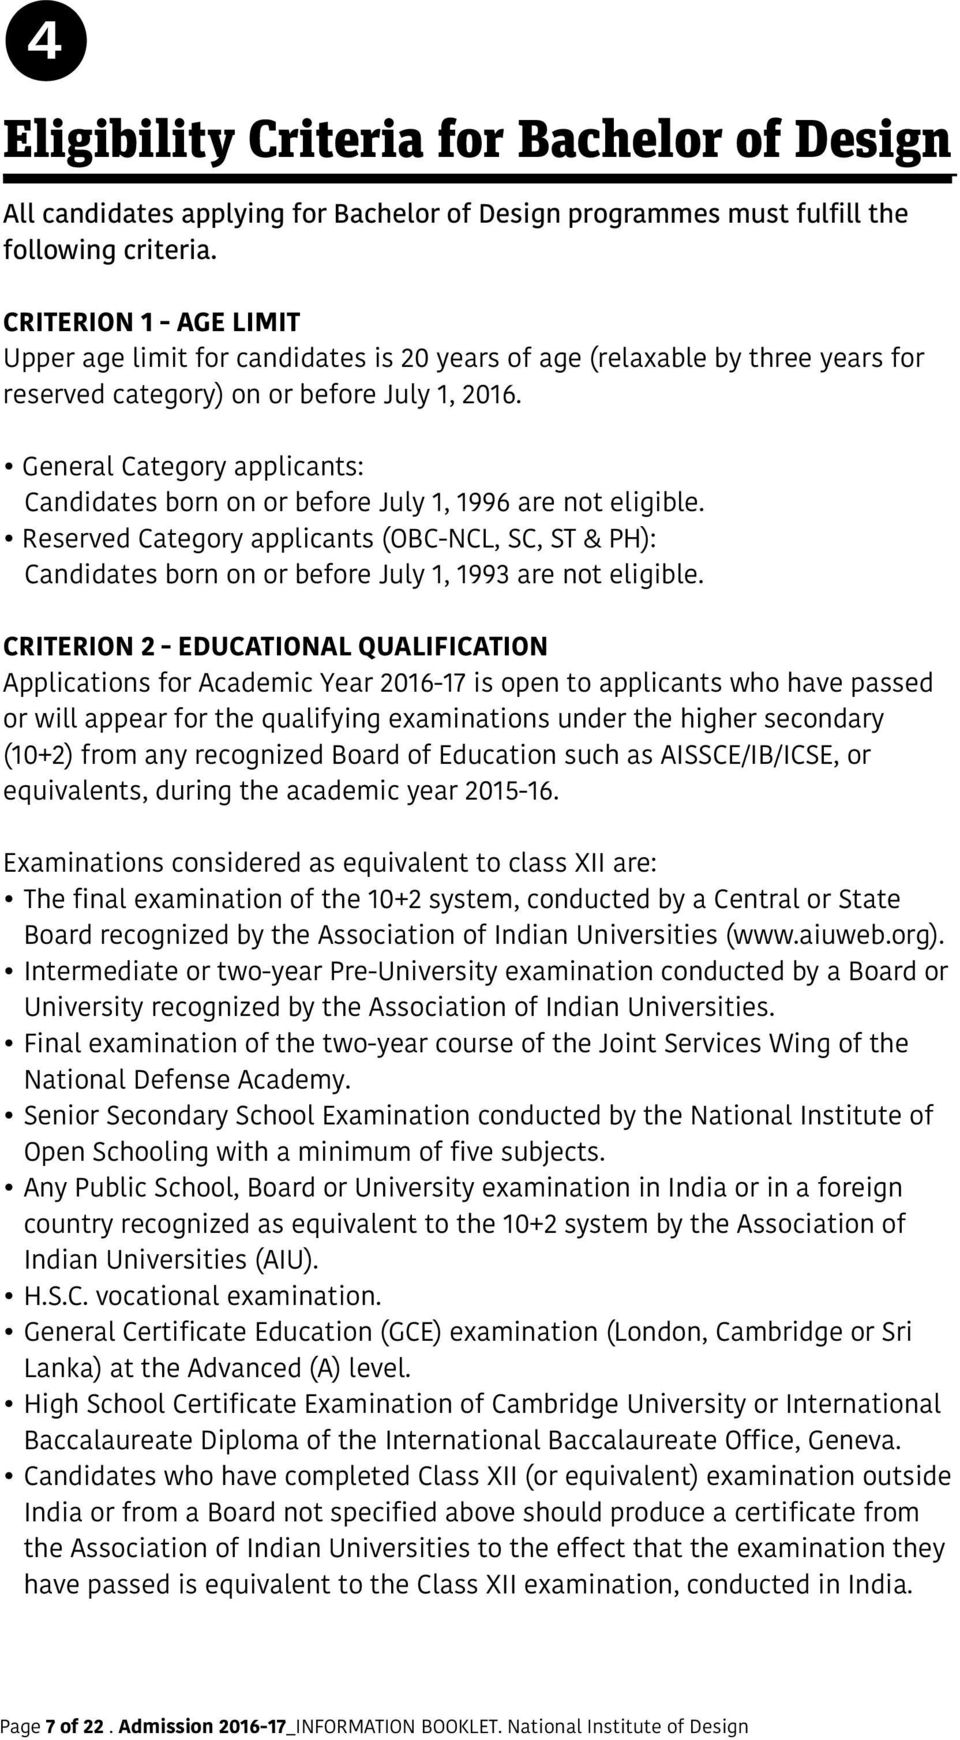 General Category applicants: Candidates born on or before July 1, 1996 are not eligible.